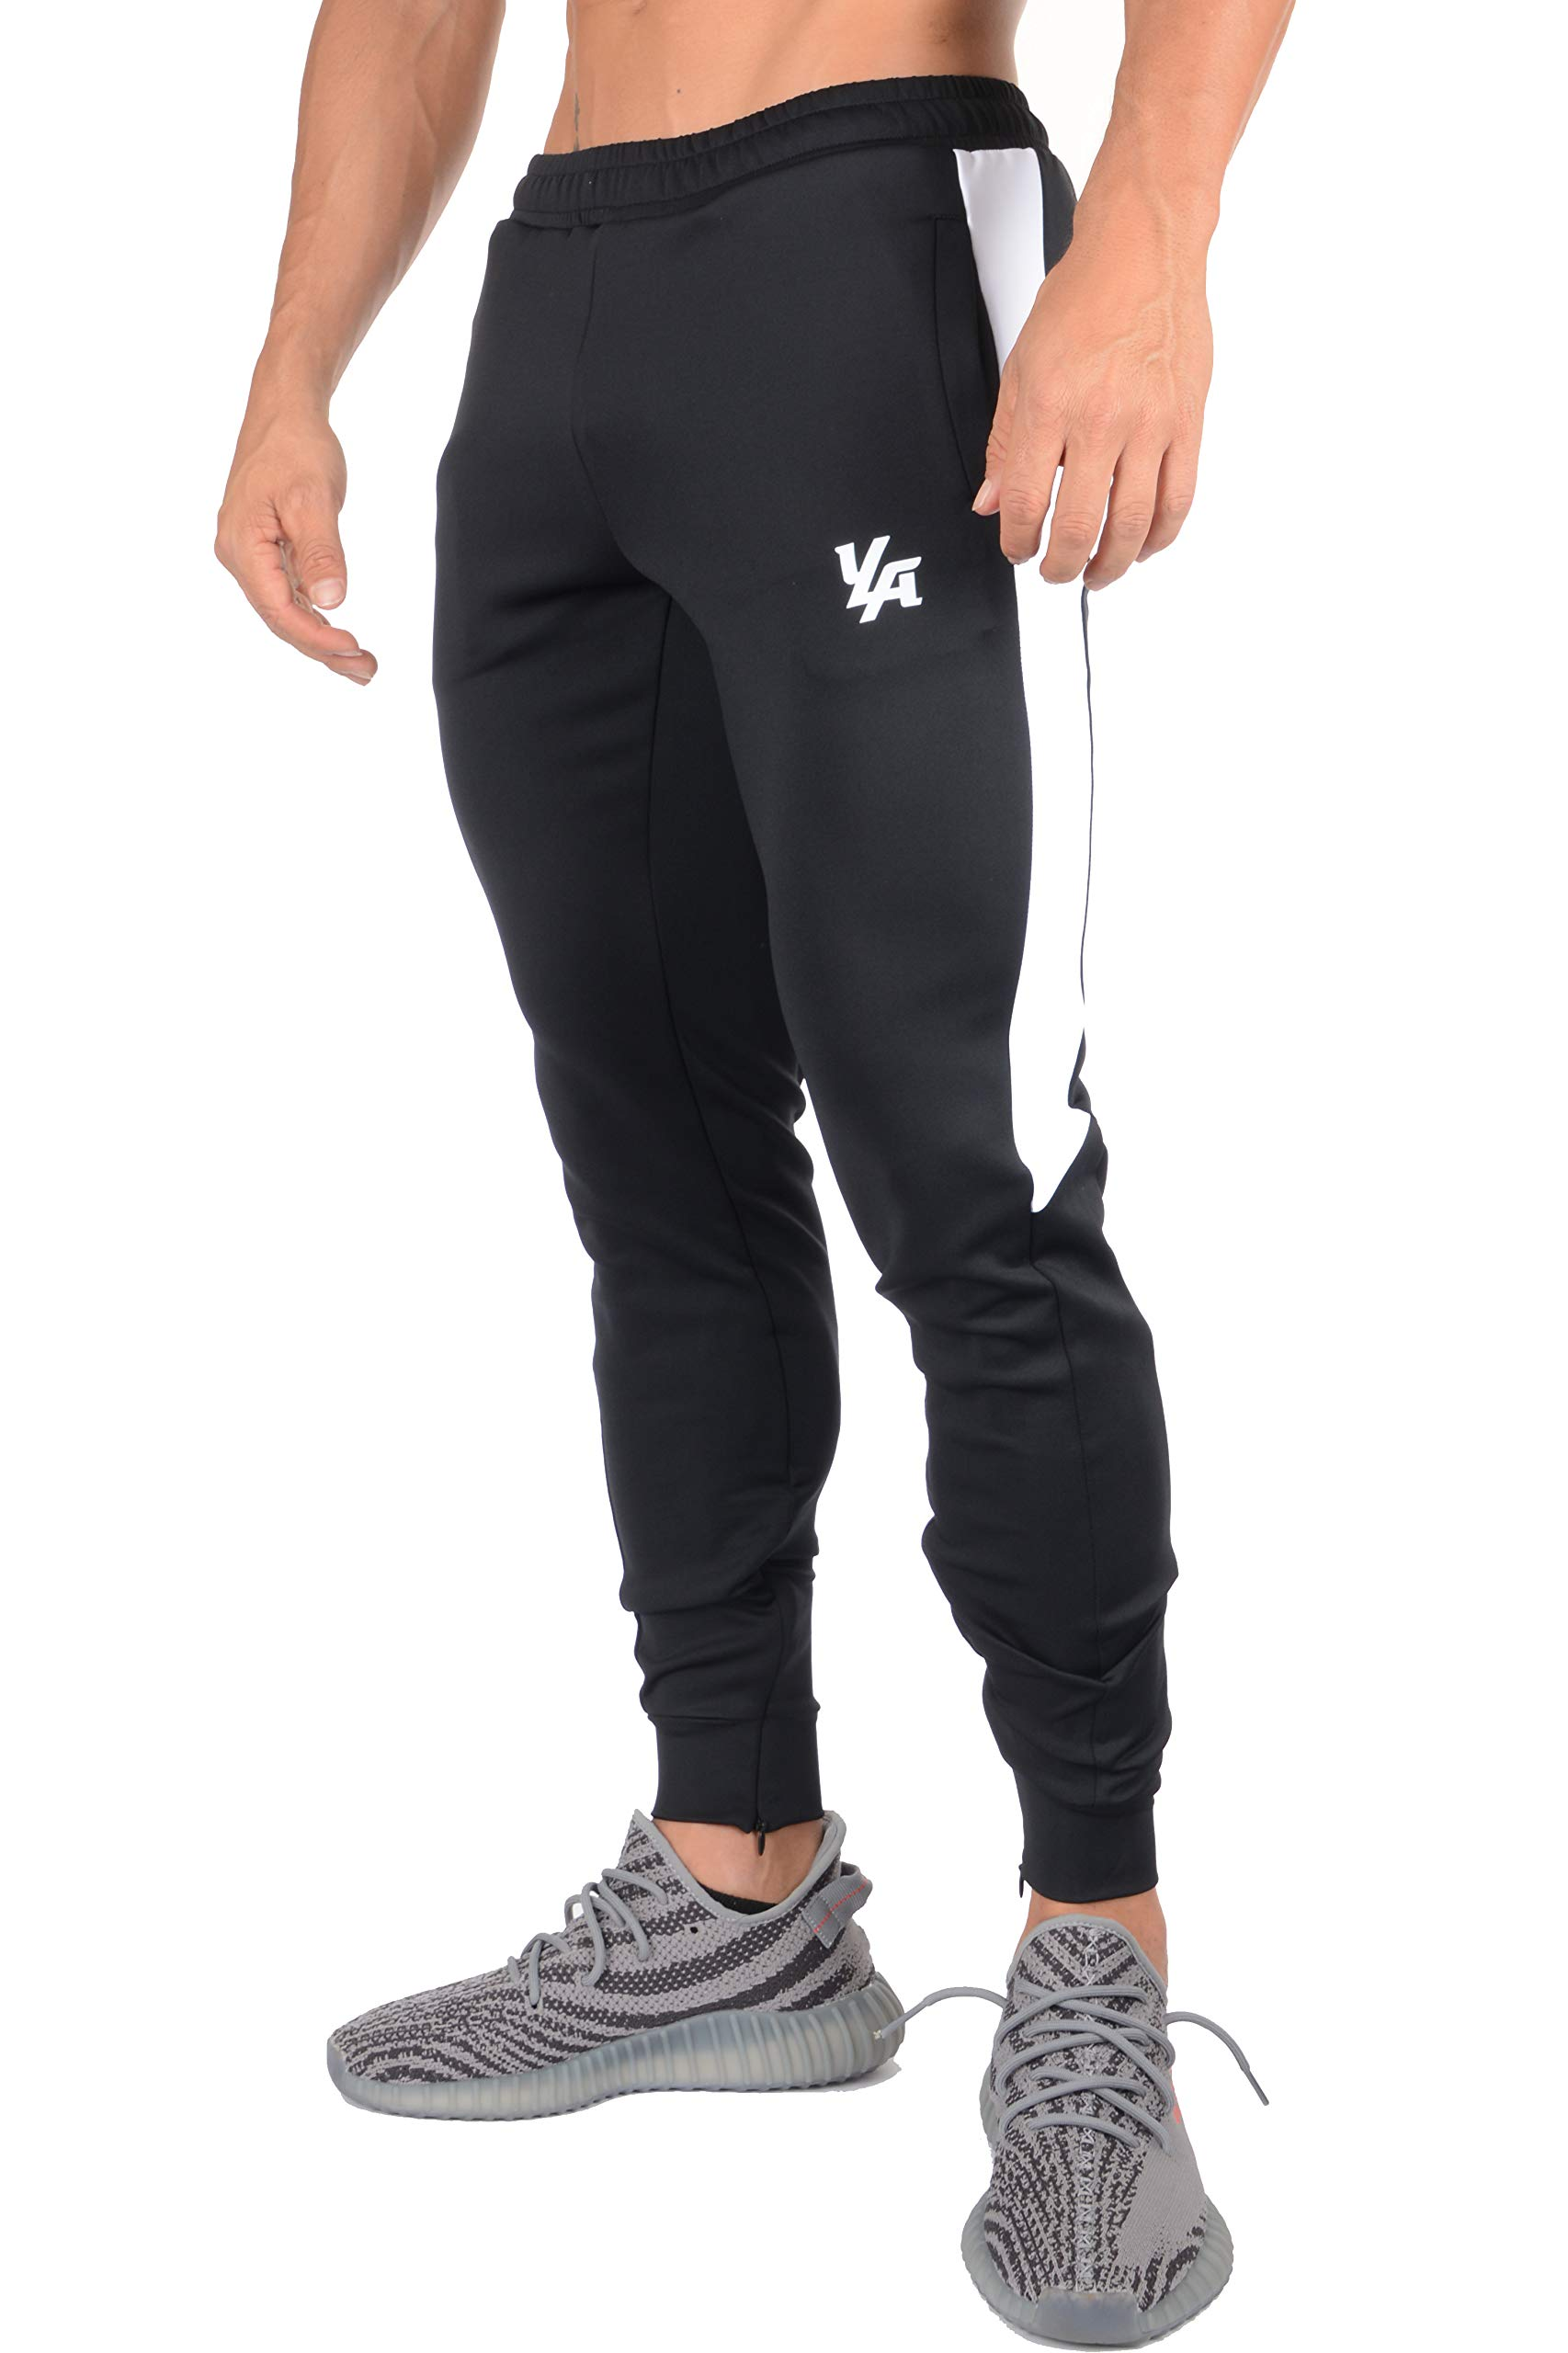 99b5f4cc11d9 YoungLA Athletic Track Pants for Men Joggers Slim Fit Workout Gym Lounge  215 product image